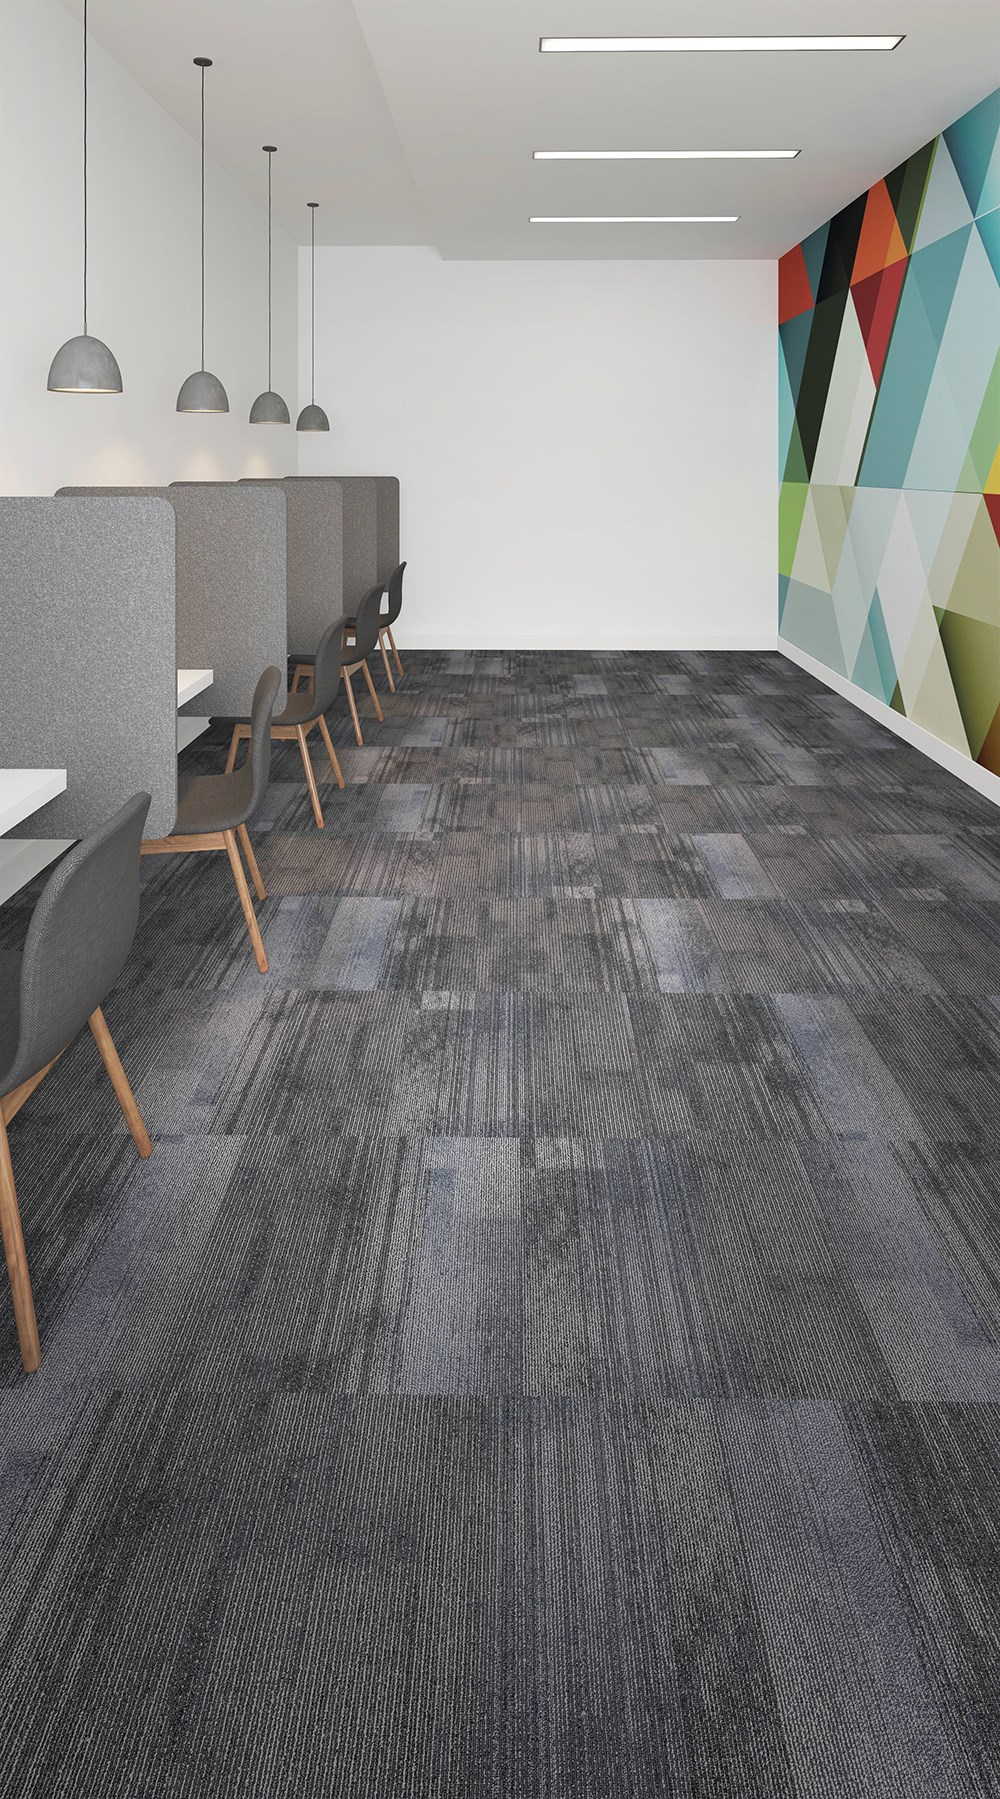 New patterns released for flooring